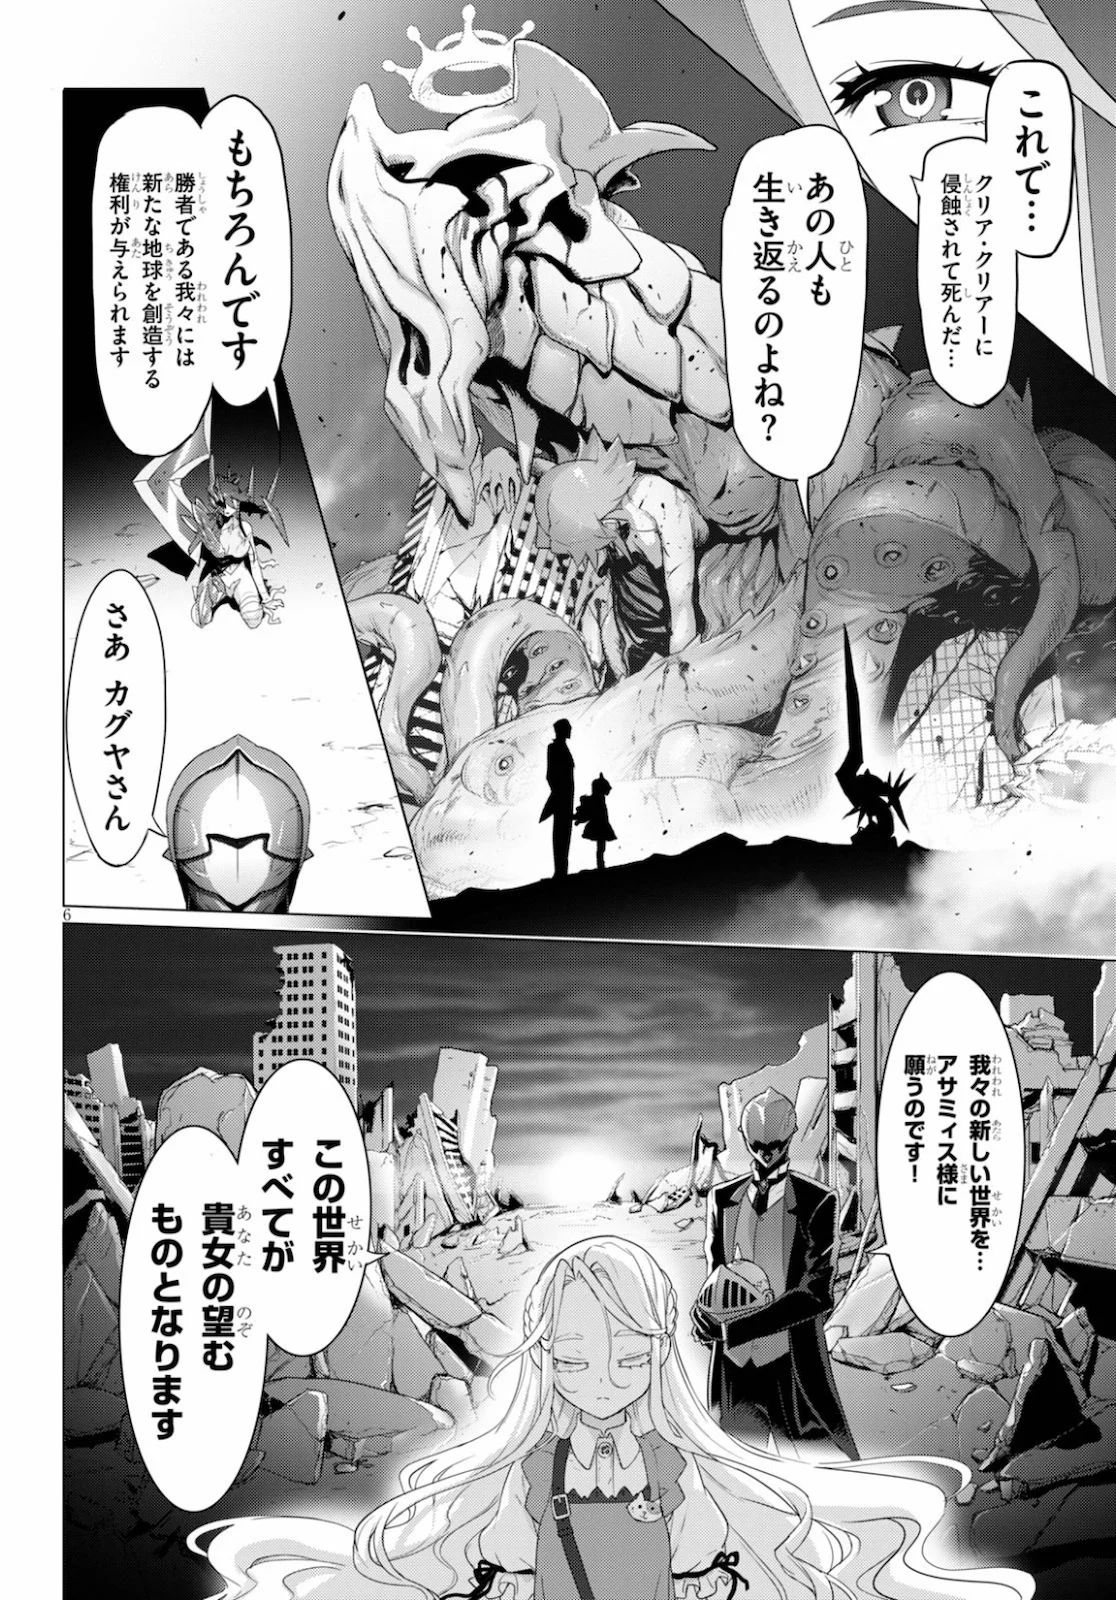 Manga Raw Mahou Shoujo Flaming Star Chapter 13